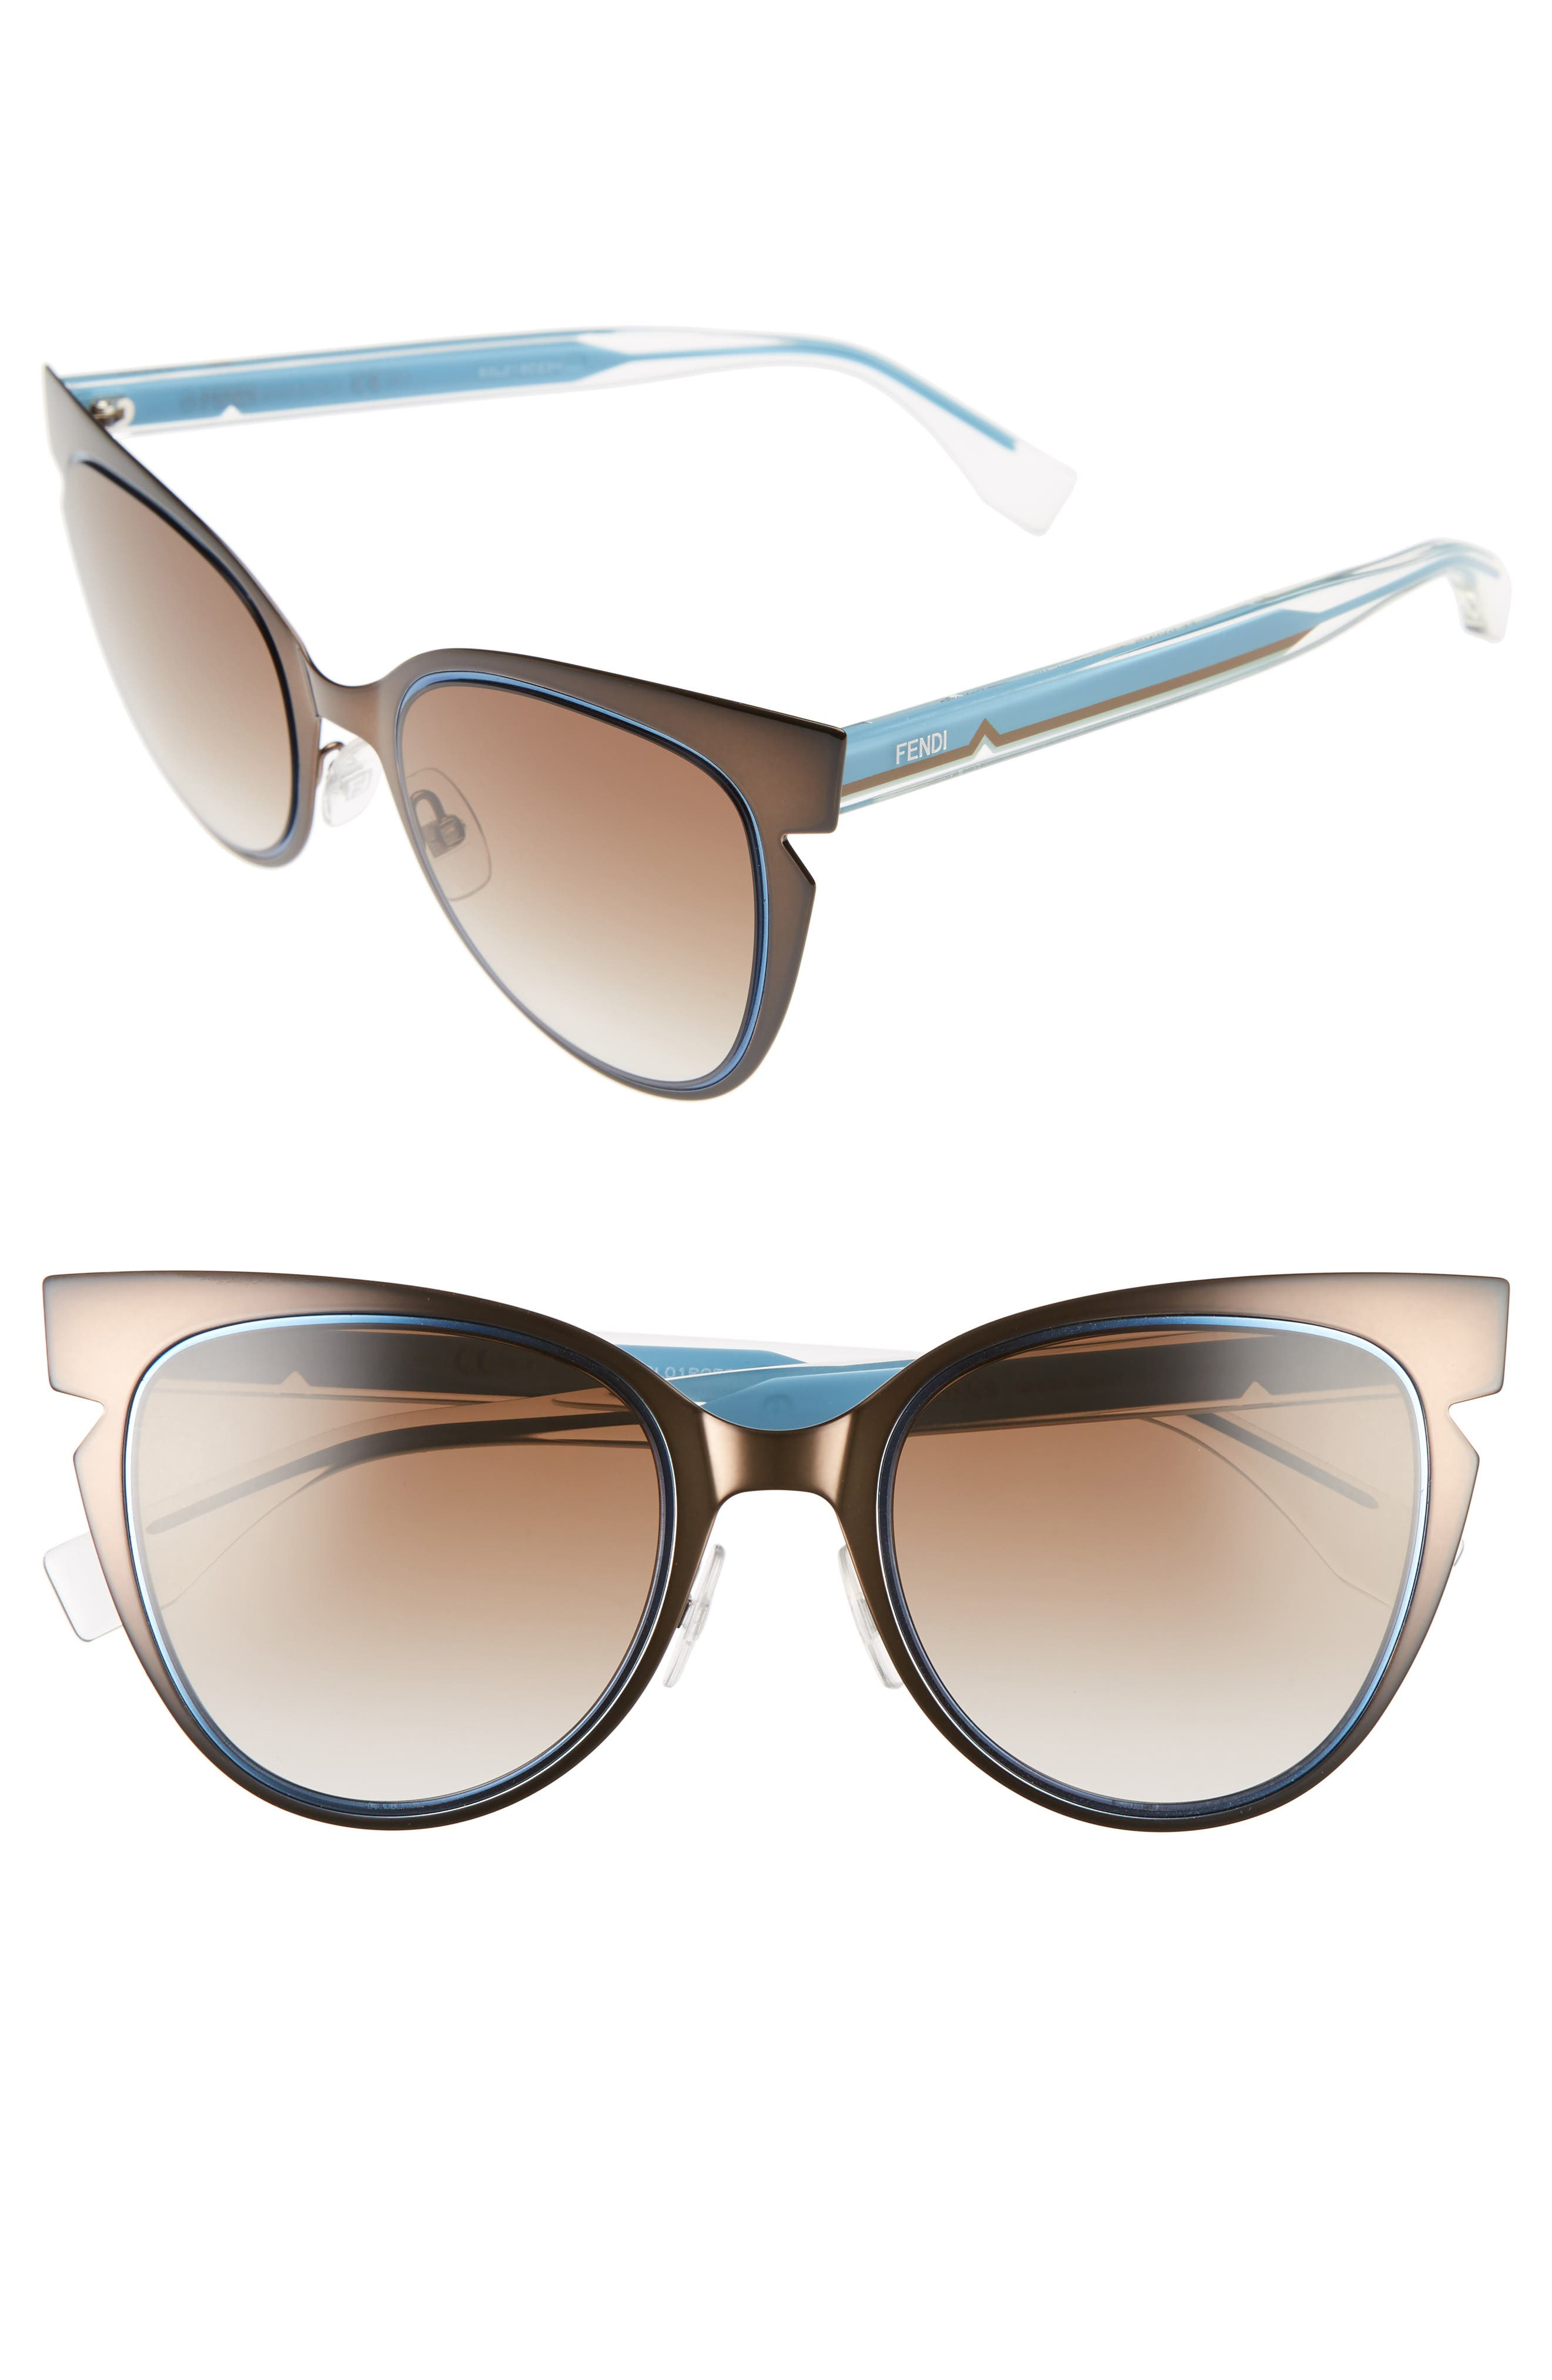 Alternate Image 1 Selected - Fendi 52mm Cat Eye Sunglasses